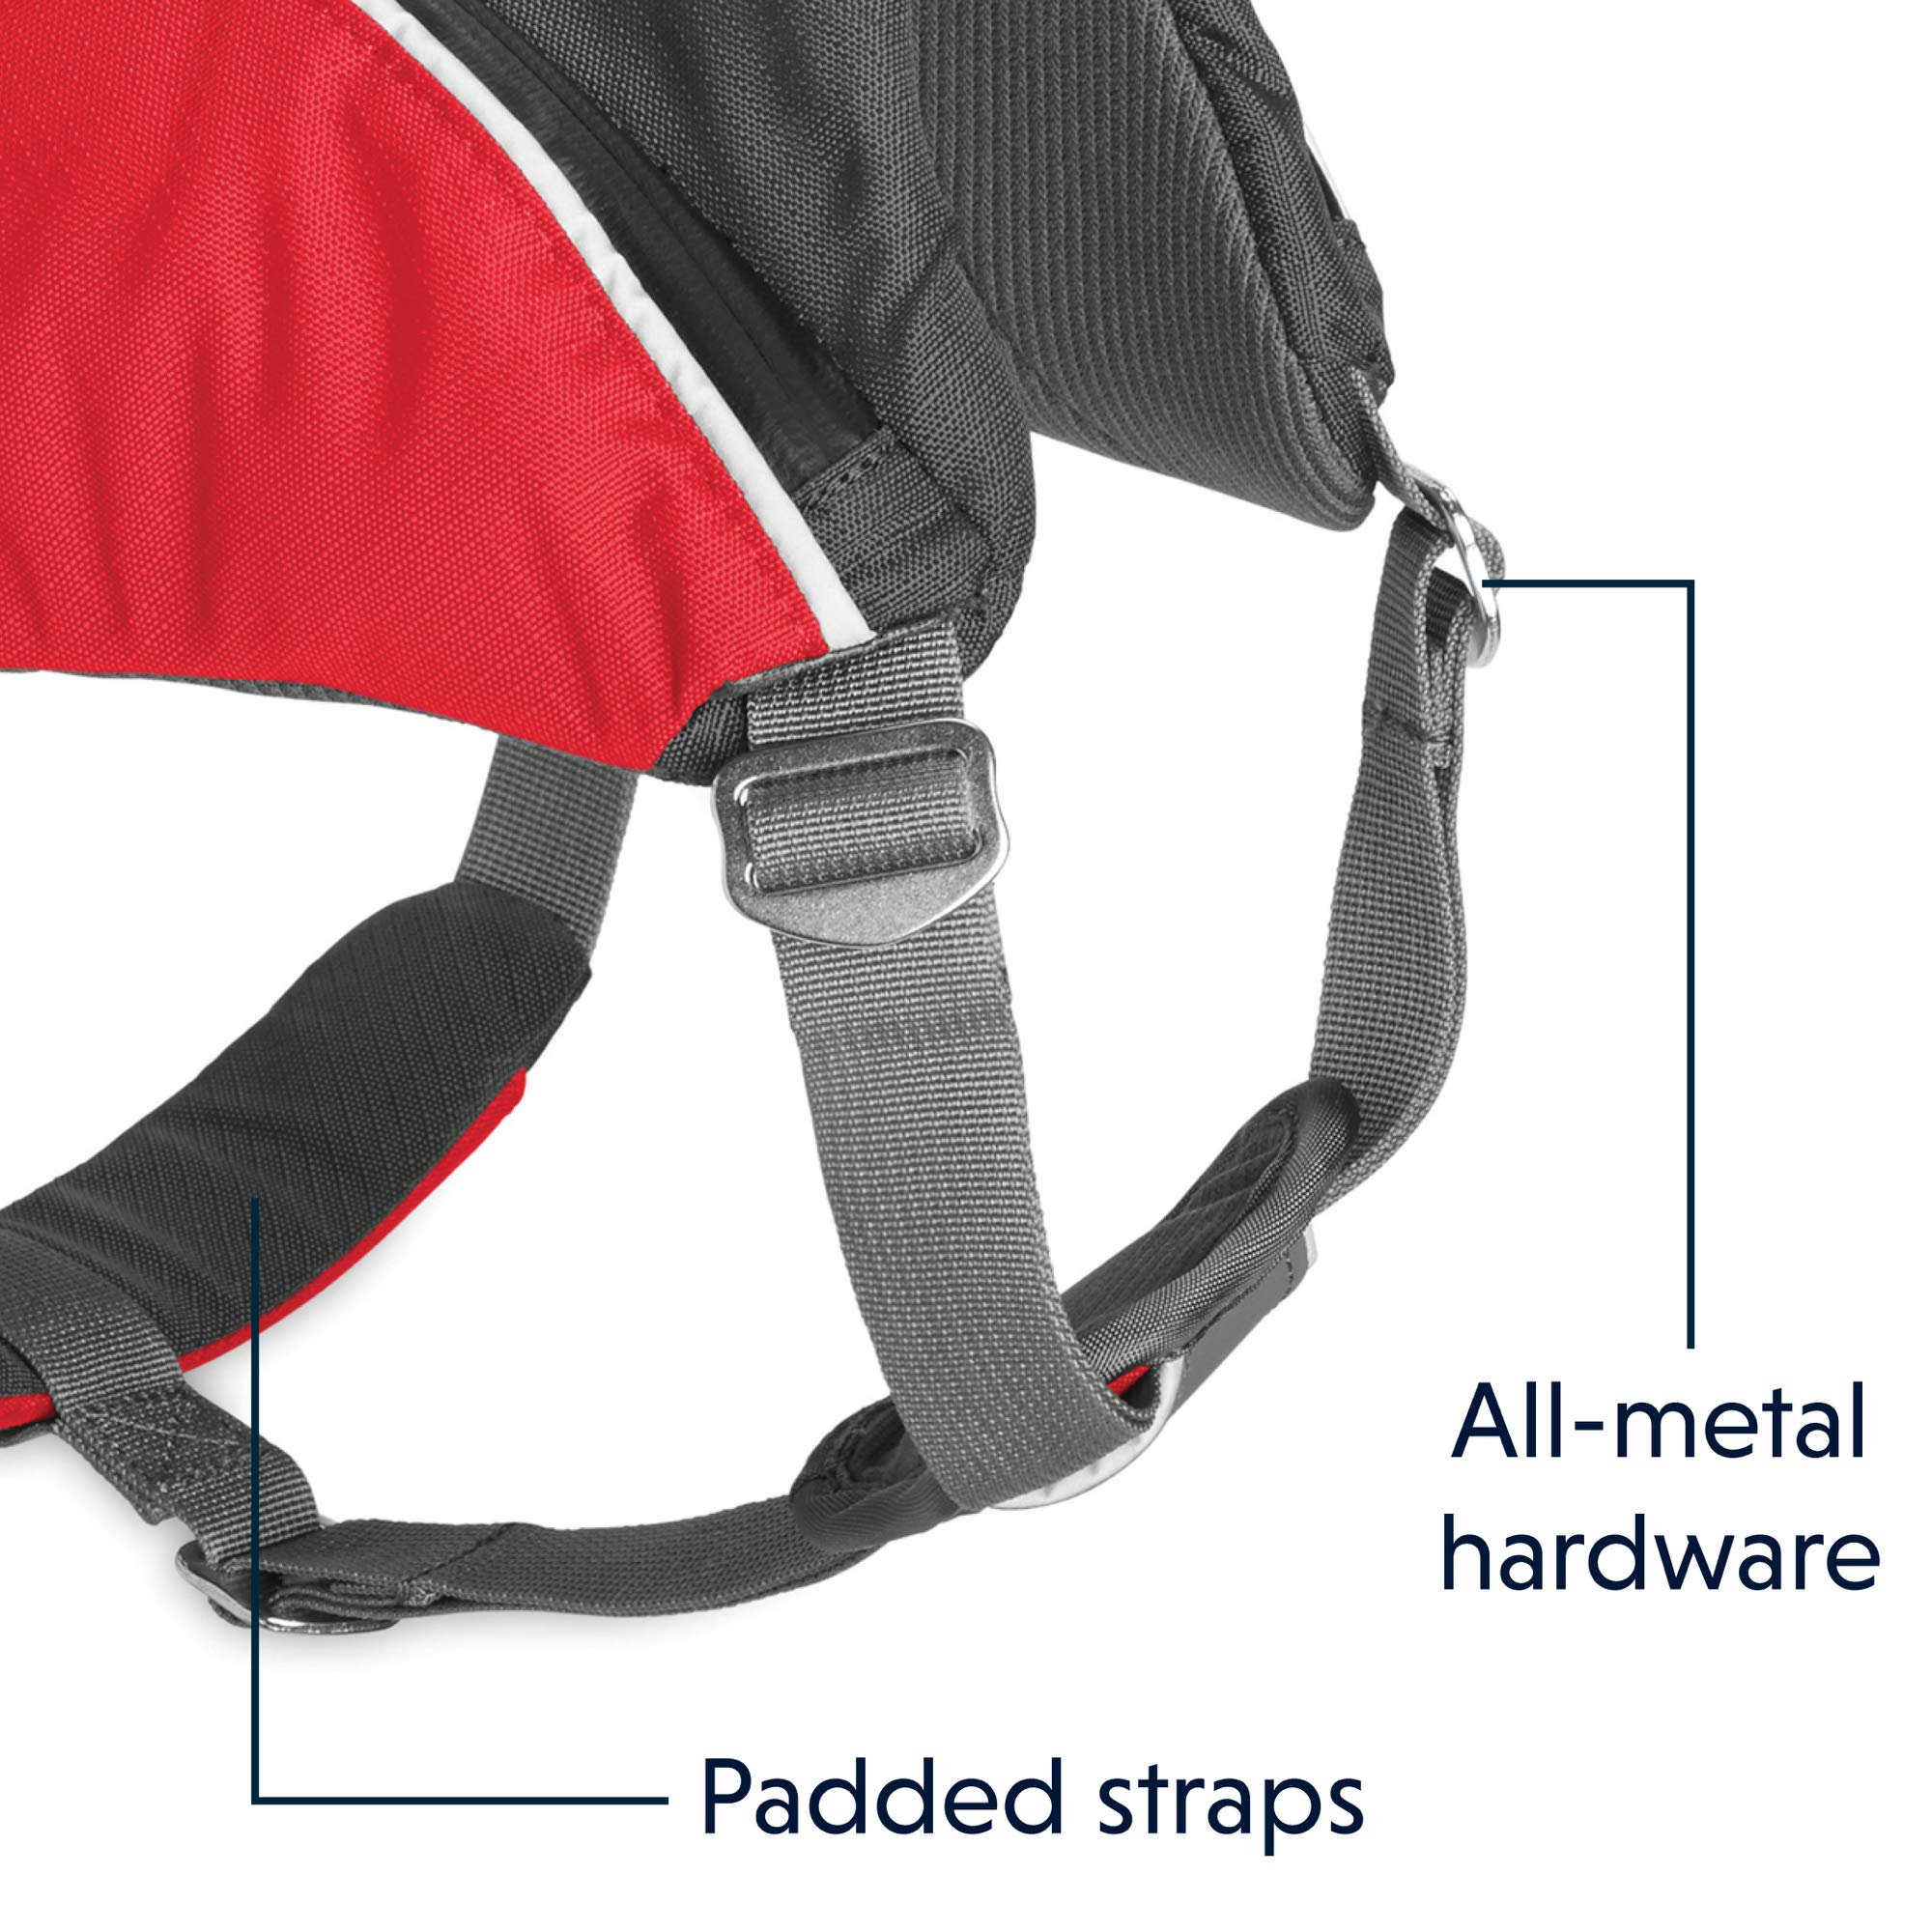 RUFFWEAR - Web Master Pro Dog Harness, Search and Rescue, Service Dogs, Snowboarding, Skiing, Everyday Wear, Red Currant, Small by RUFFWEAR (Image #6)